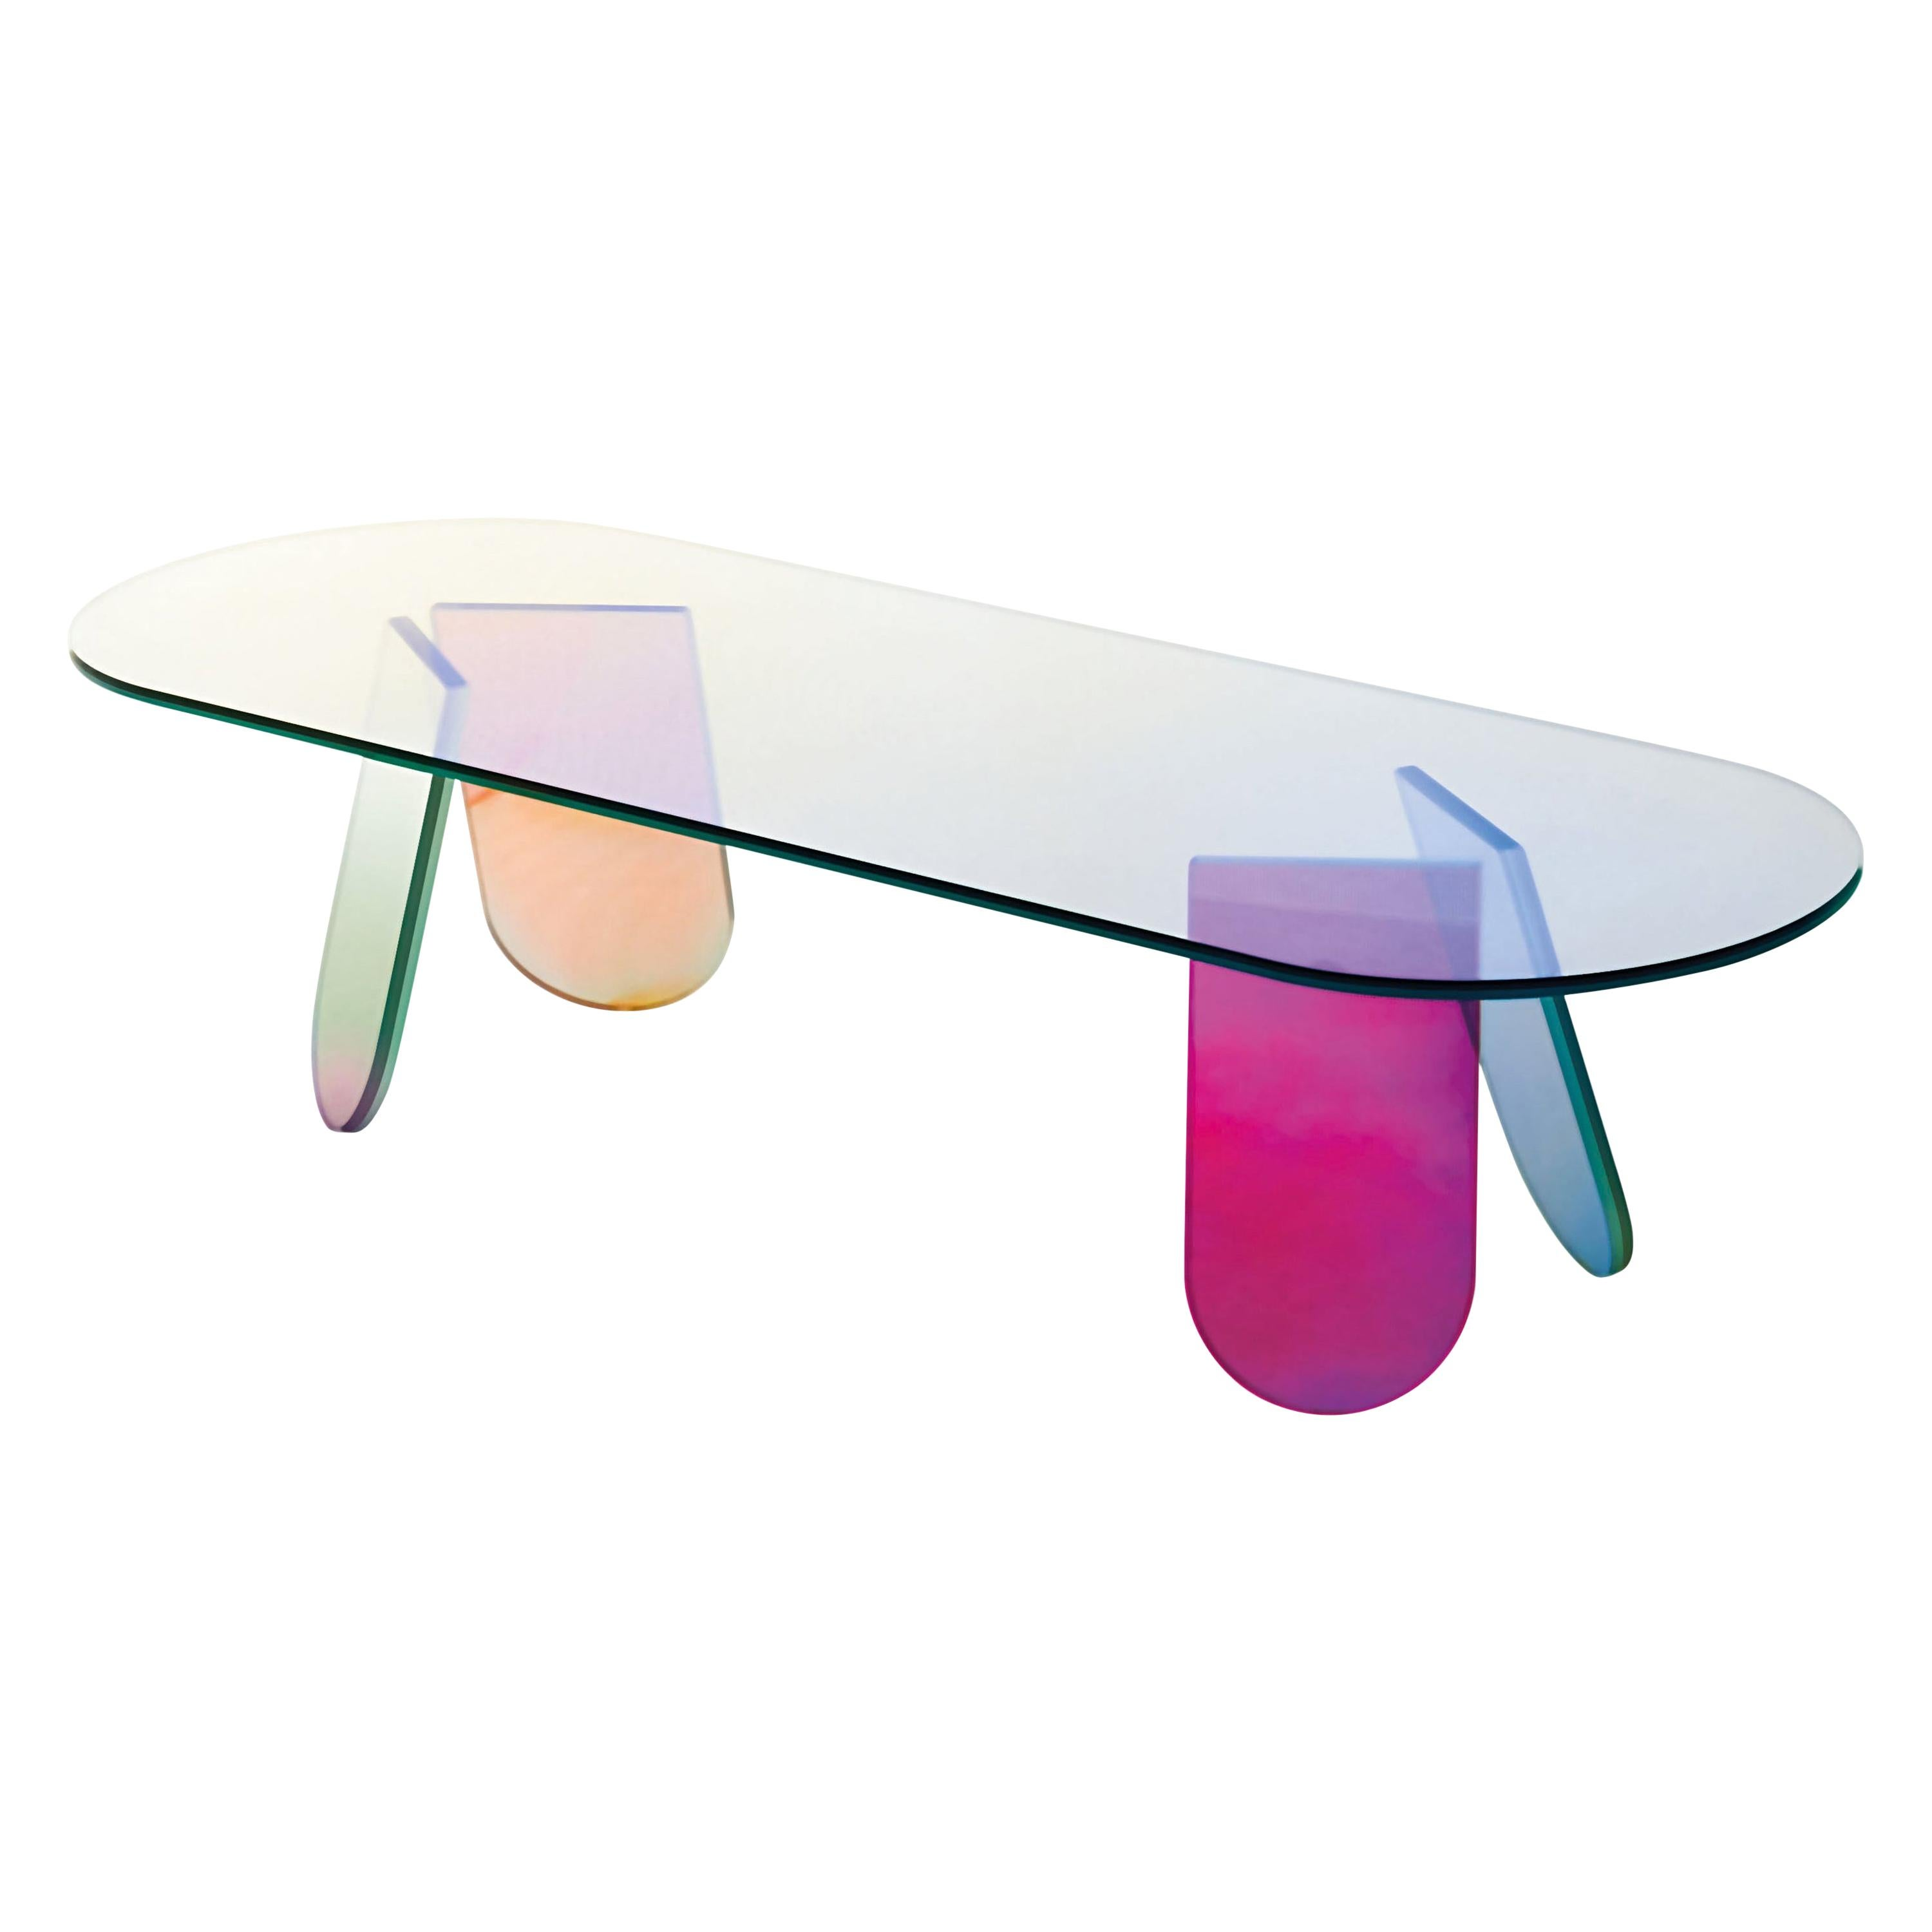 Shimmer Large Oval Low Table, by Patricia Urquiola for Glas Italia